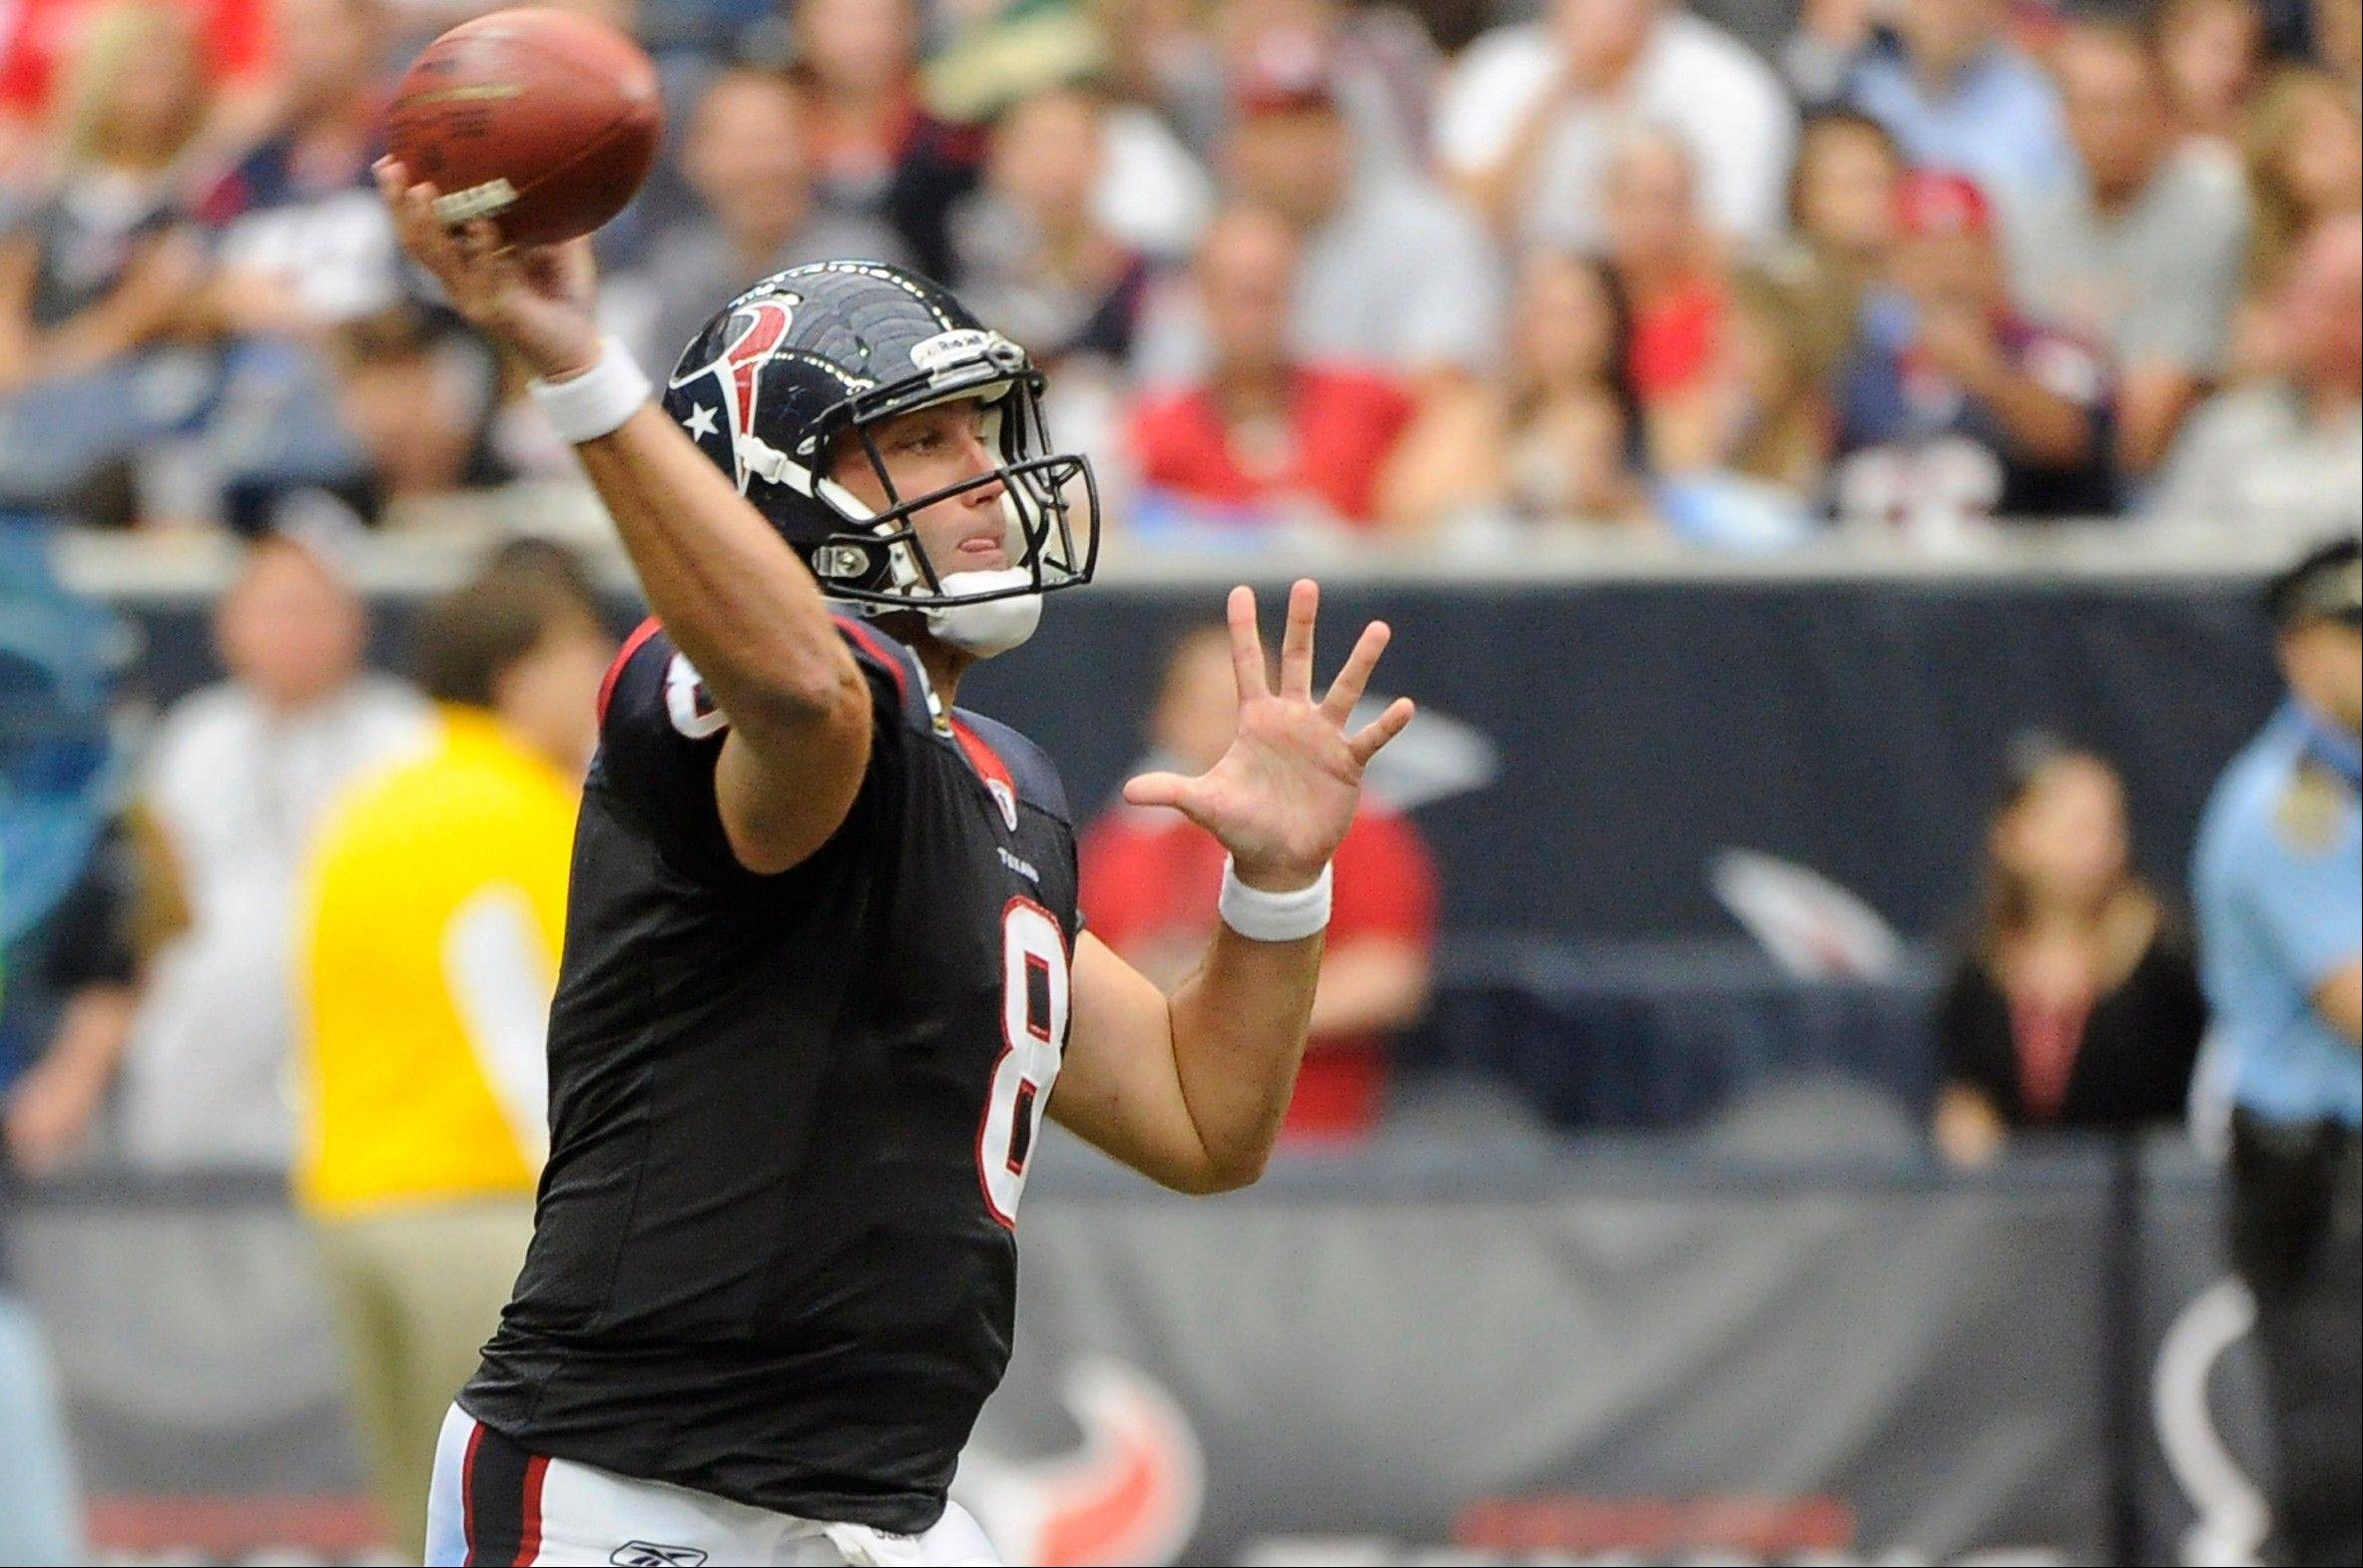 Down the road in Week 16, Houston Texans quarterback Matt Schaub could have a big game against Indianapolis and he is worth grabbing now if your QB is off that week.